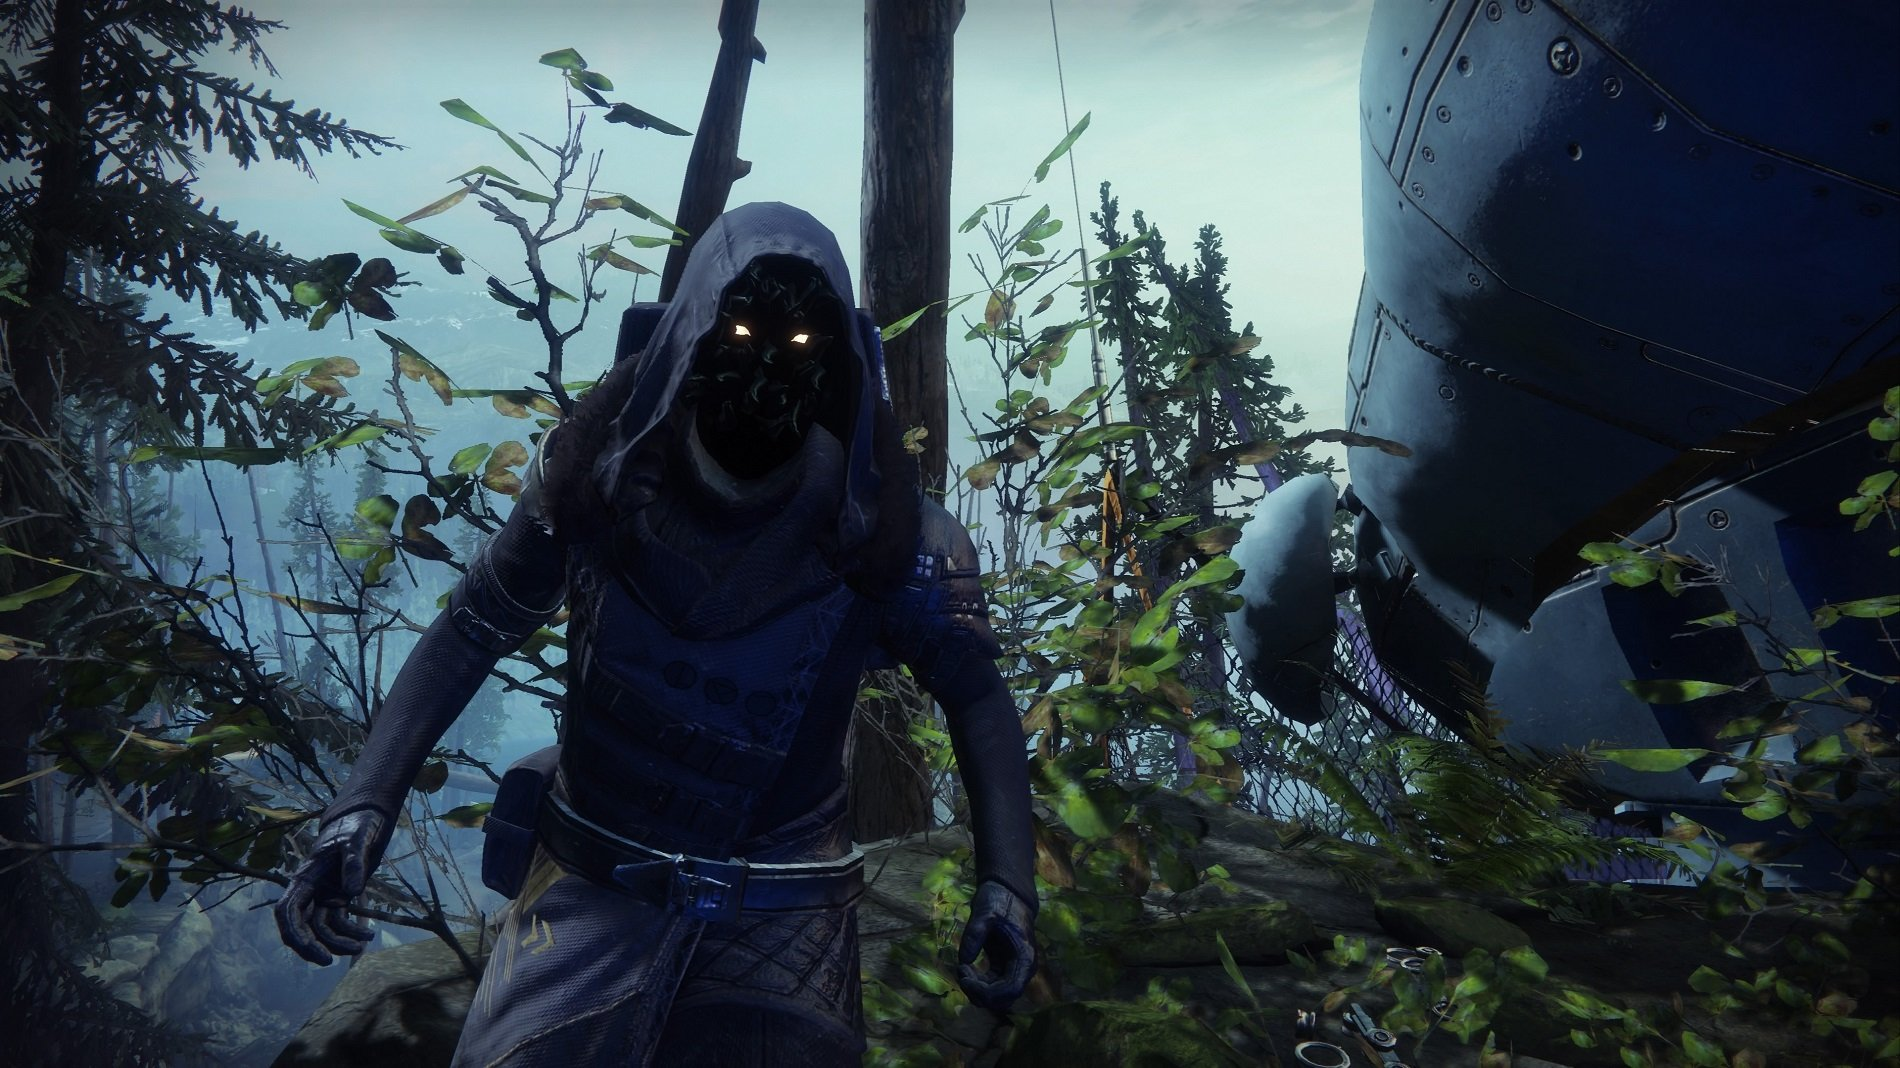 Where to find Xur in Destiny 2 - January 3, 2020